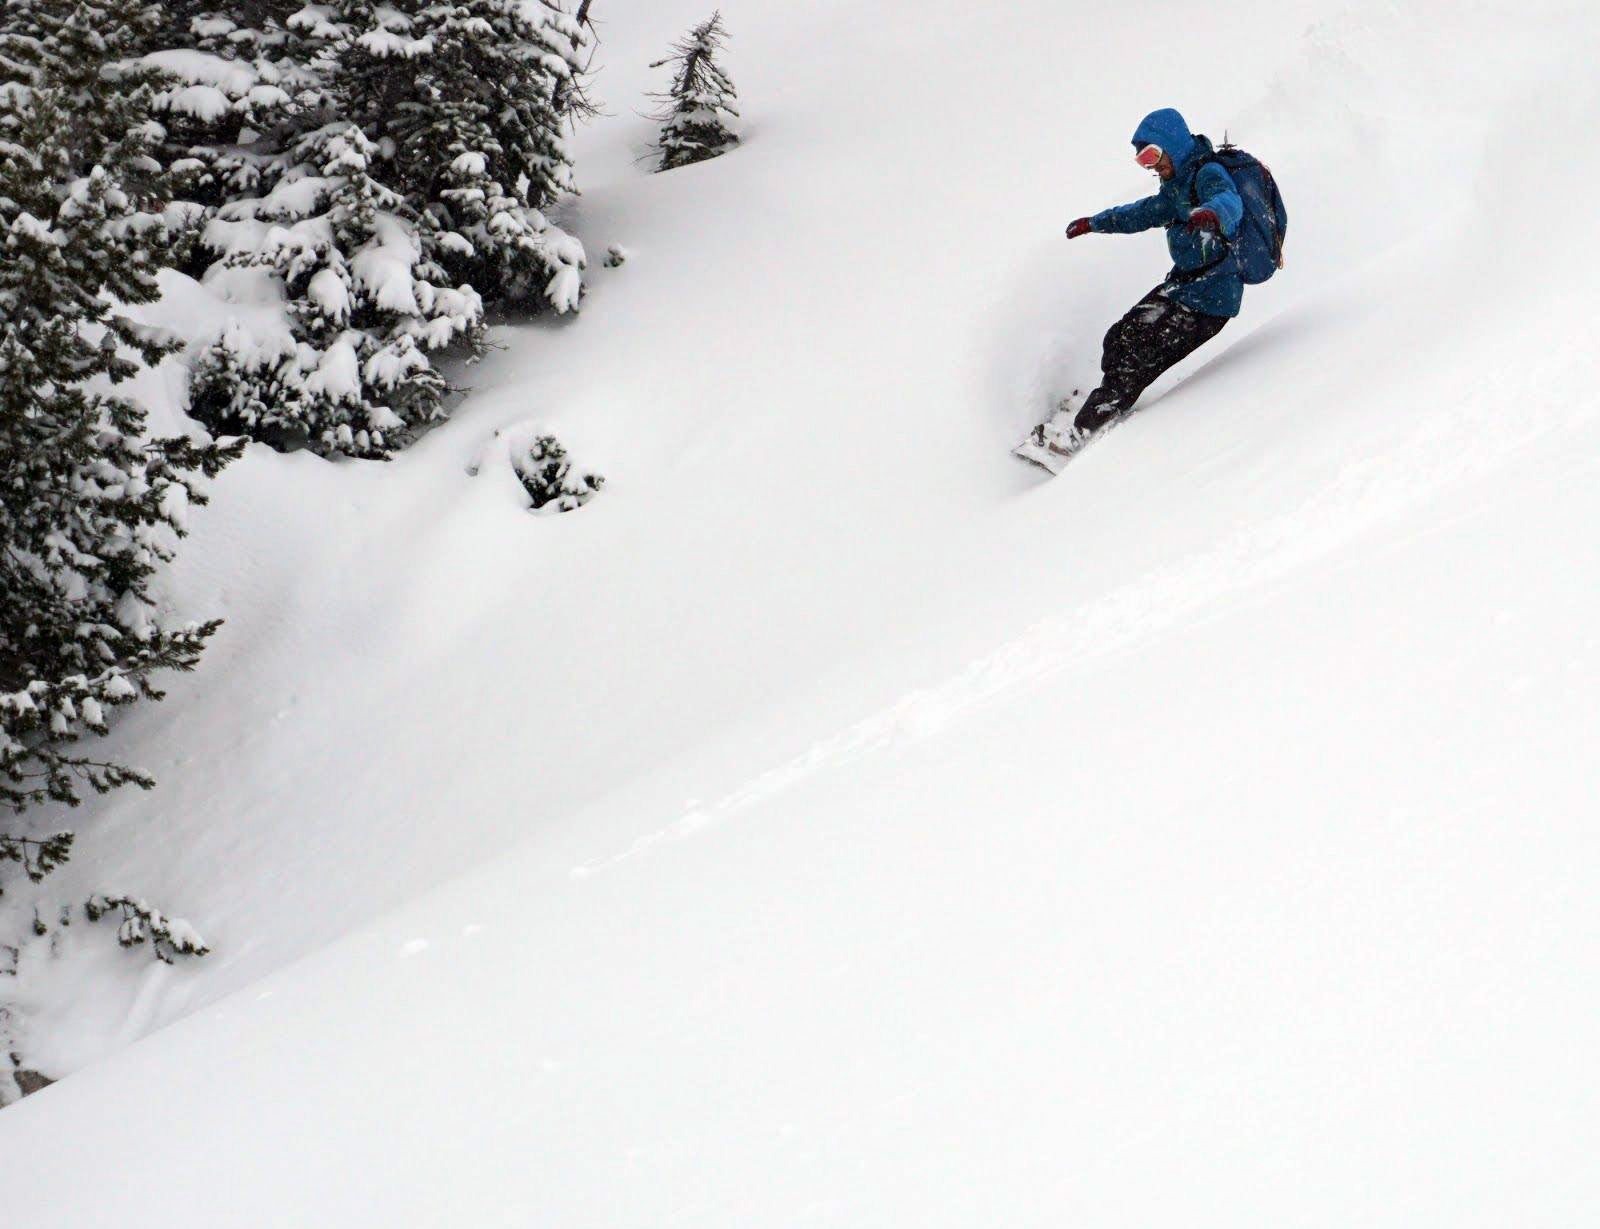 Venture Snowboards Ambassador, Brett Menter, Backcountry, Splitboarding, Duffy Lake Yurt, British Columbia